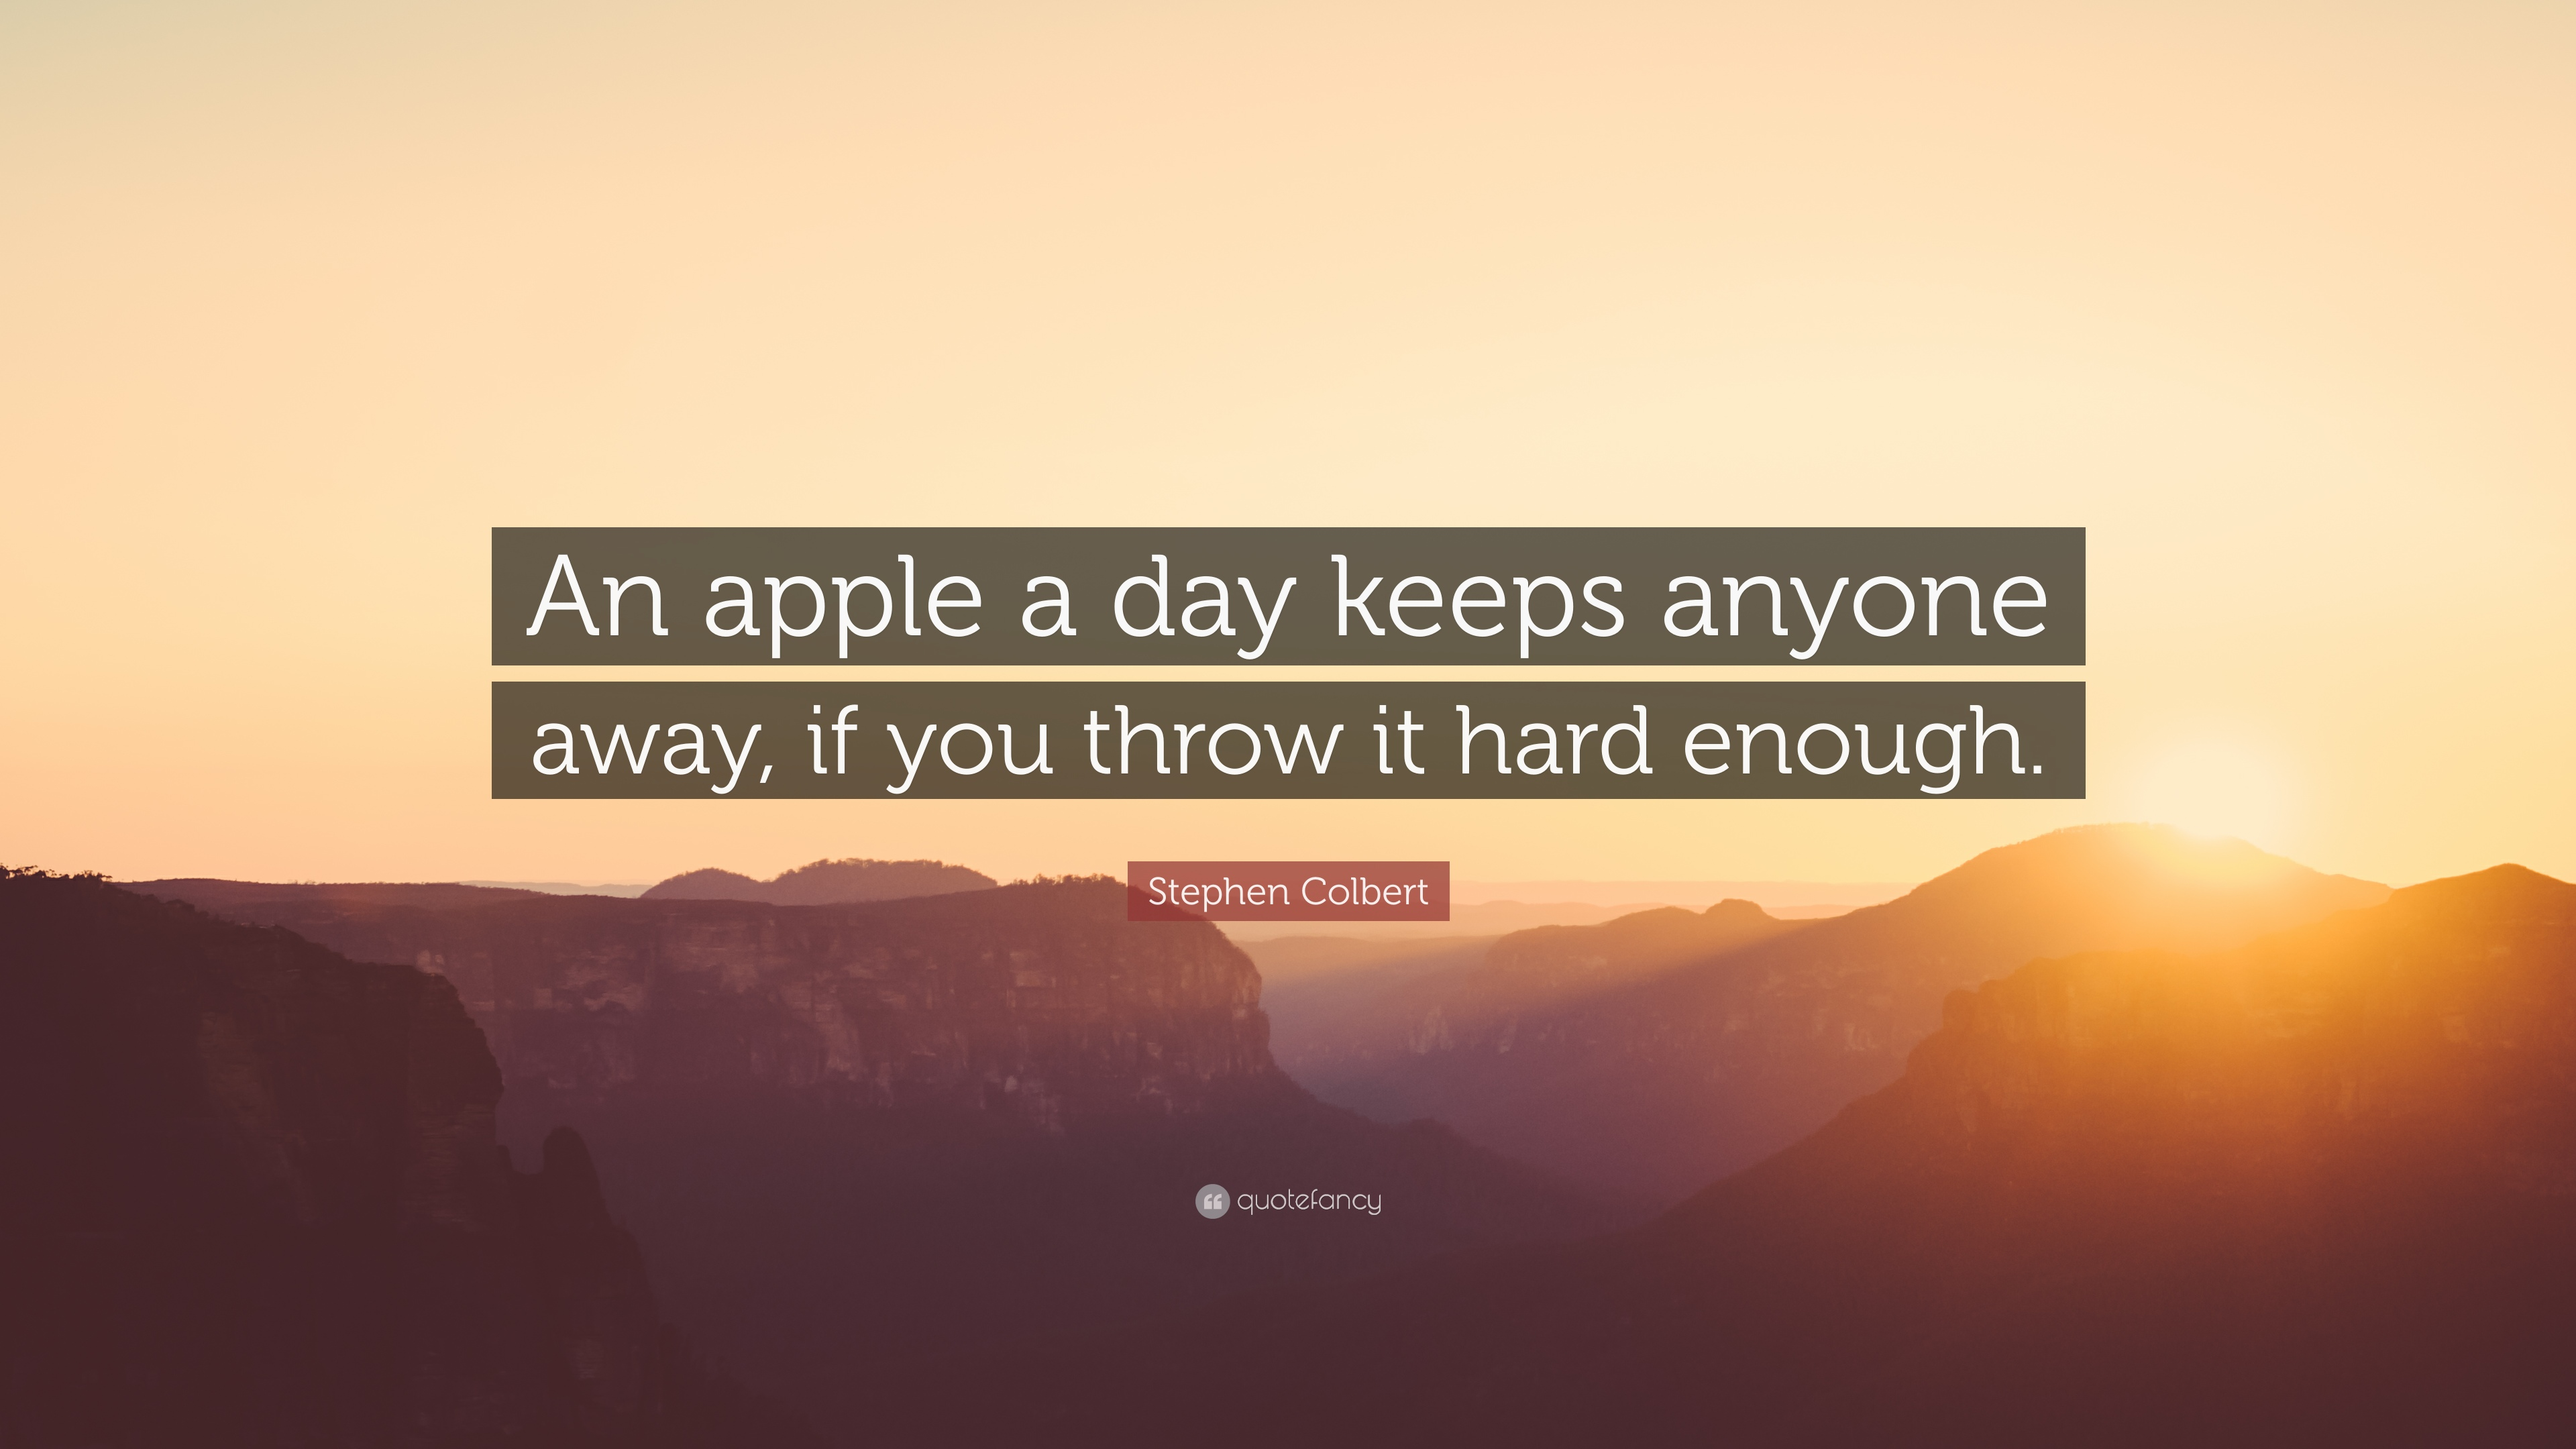 an apple a day keeps it away essay 'an apple a day keeps the doctor away' – origin, meaning, expansion, and significance of the proverb category: proverbs, sayings, idioms and phrases on september 18, 2016 by lighthouse origin.